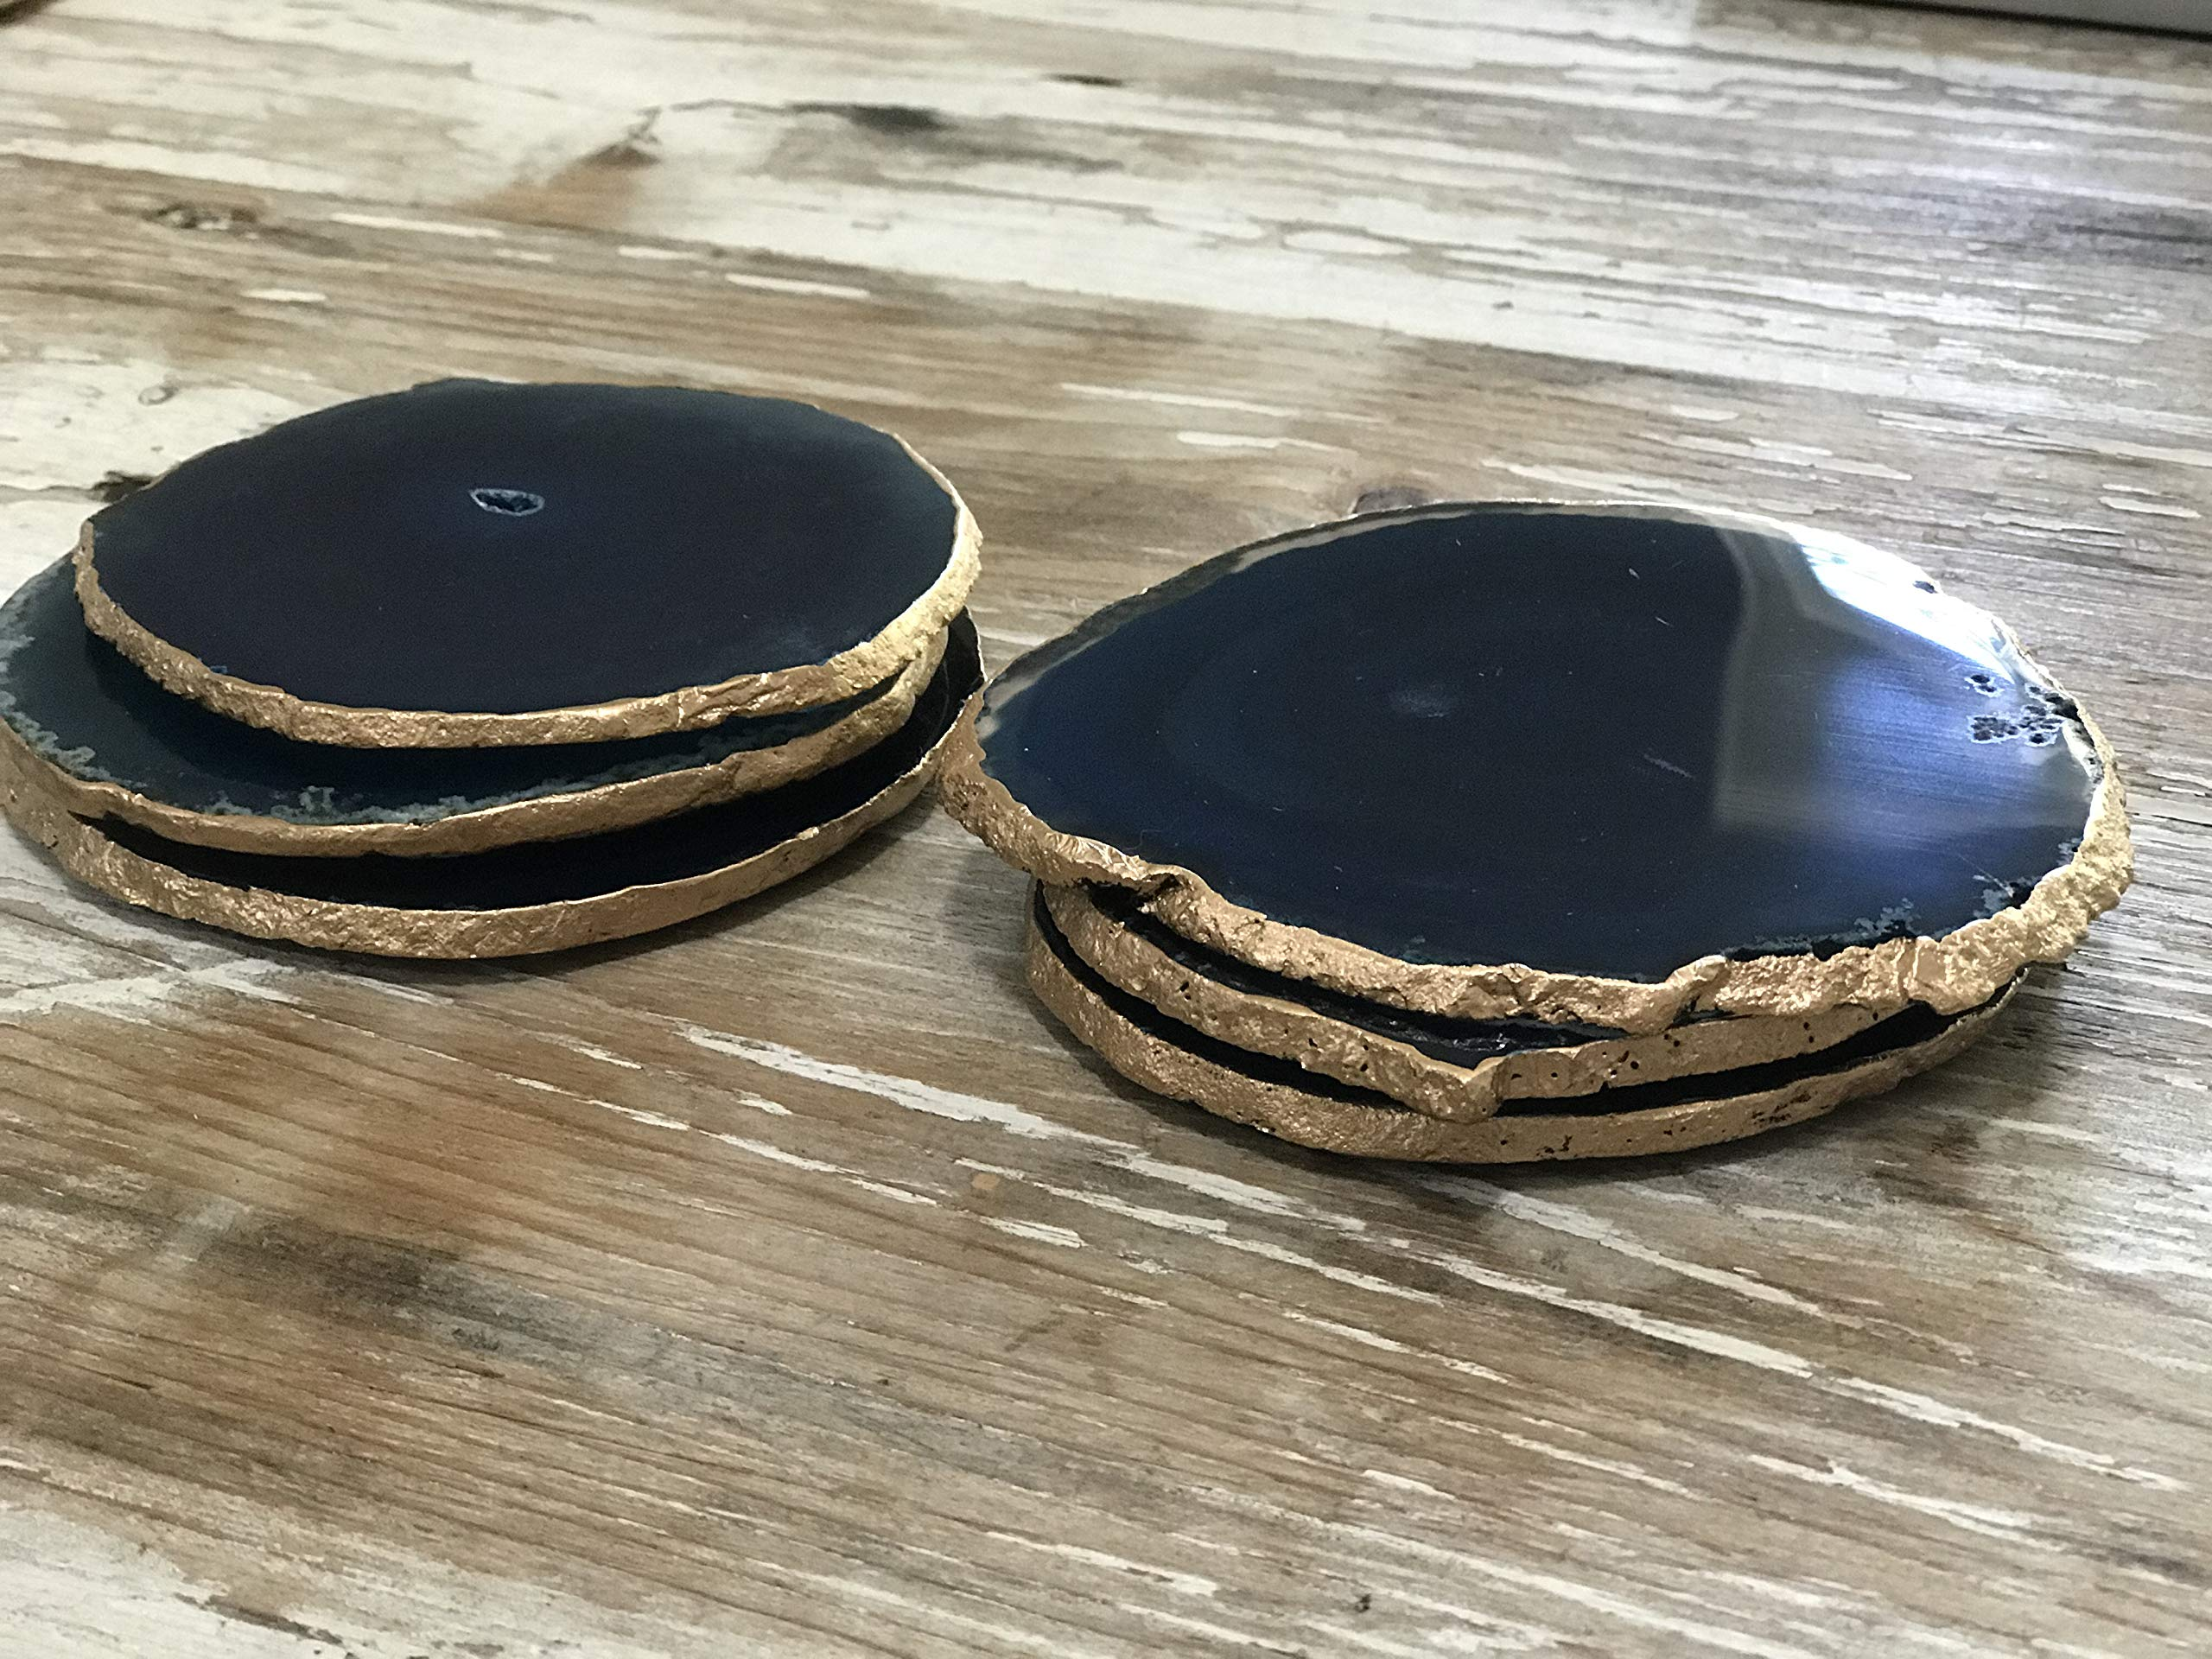 Agate Coasters - Teal Colored Agate Coasters - Gold Rimmed - Set of 4